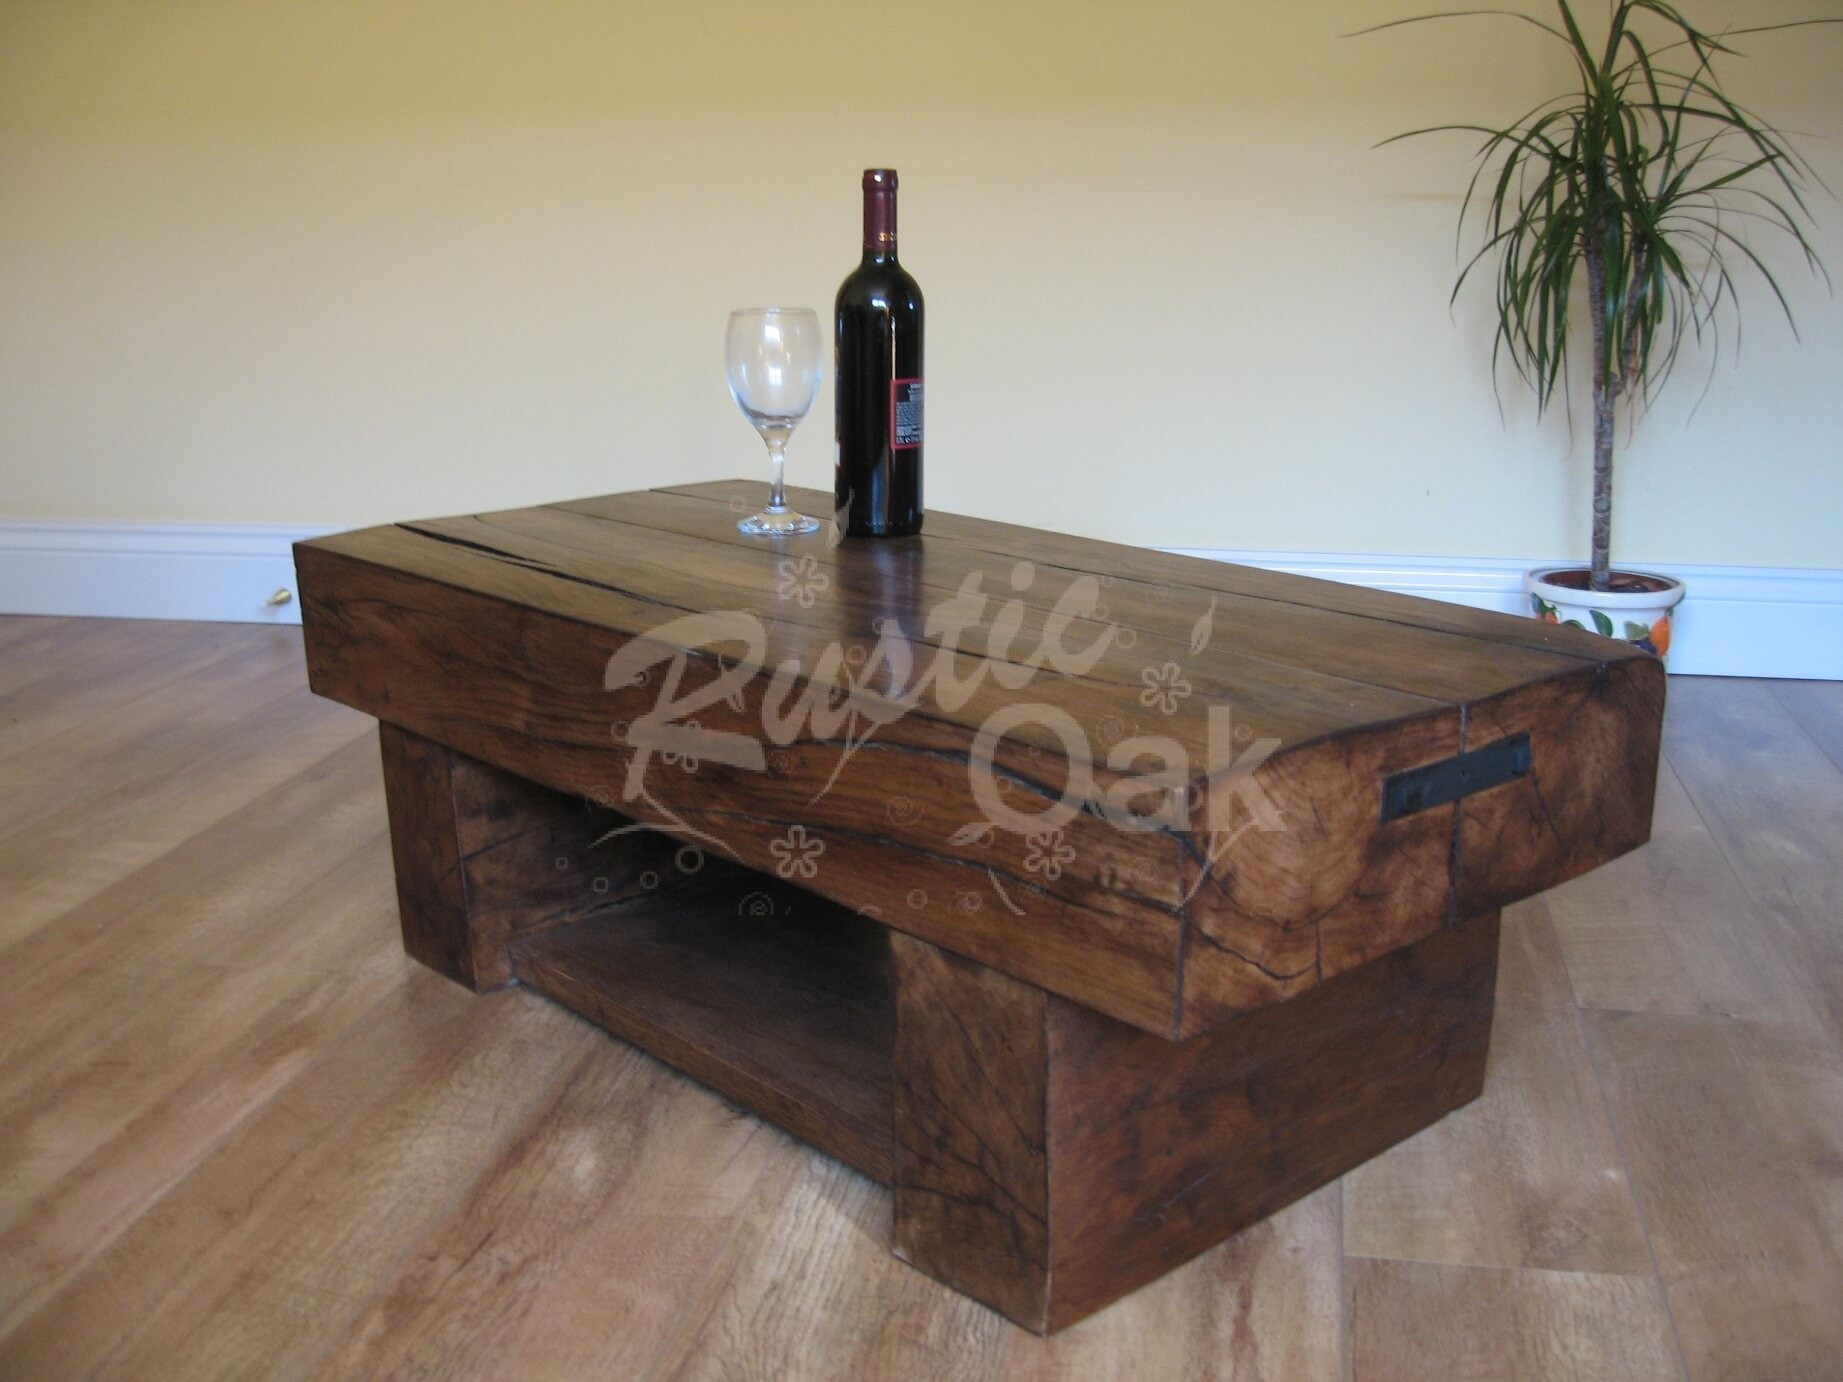 2 Beam Coffee Table with Shelf Rustic Oak Furniture